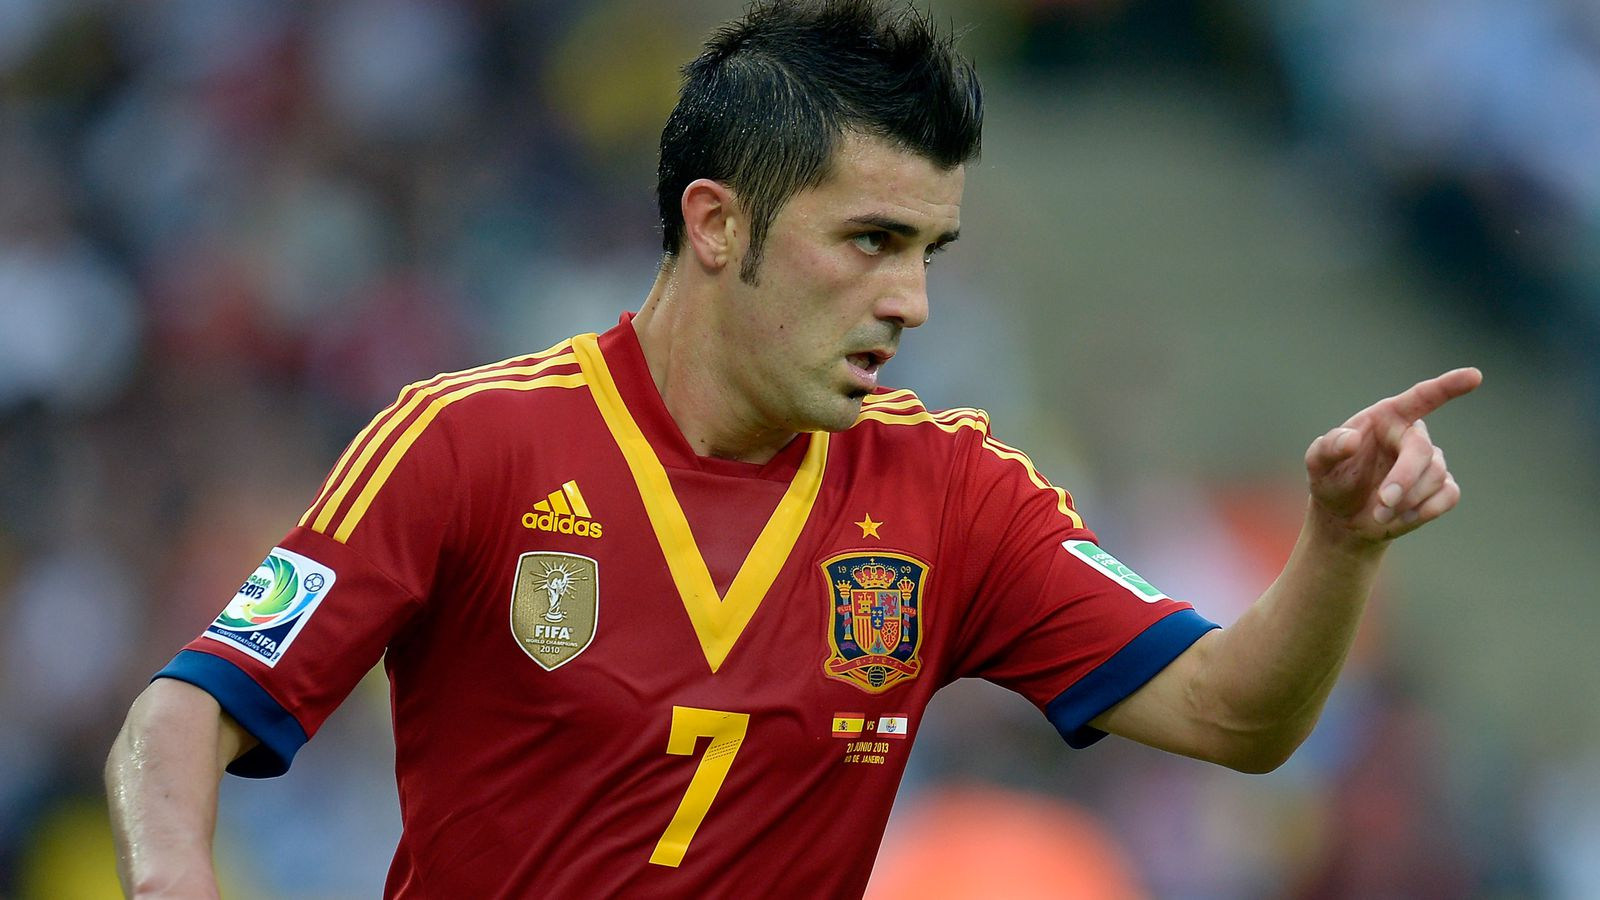 Spain vs. Tahiti, 2013 Confederations Cup: Final score 10-0, which is really unfortunate ...